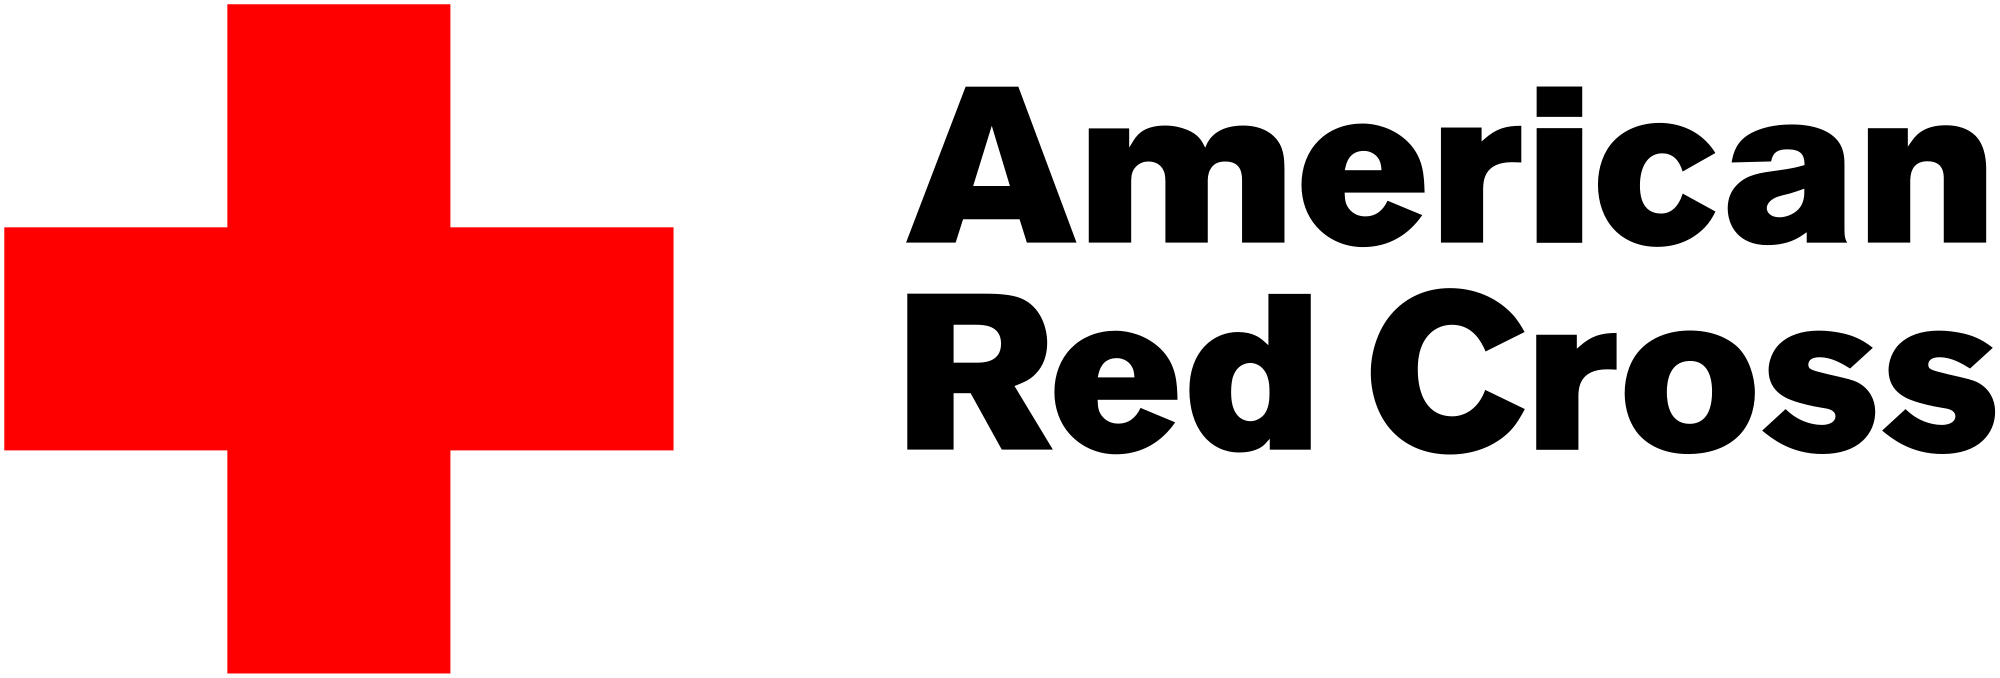 Cross logo png. American red transparent open